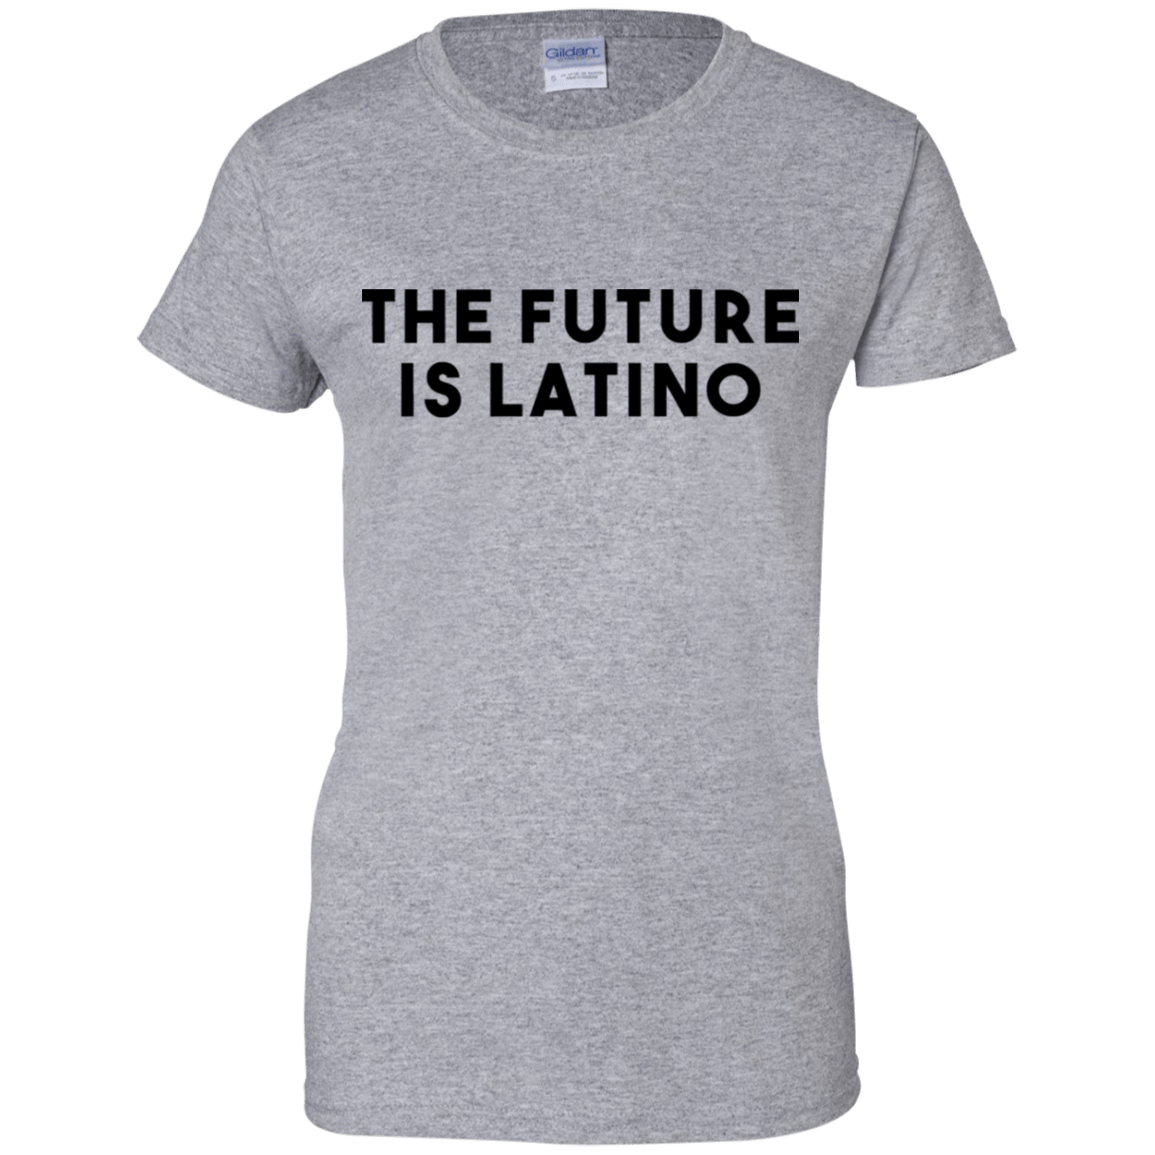 The Future Is Latino 939-9265-73057007-44821 - Tee Ript